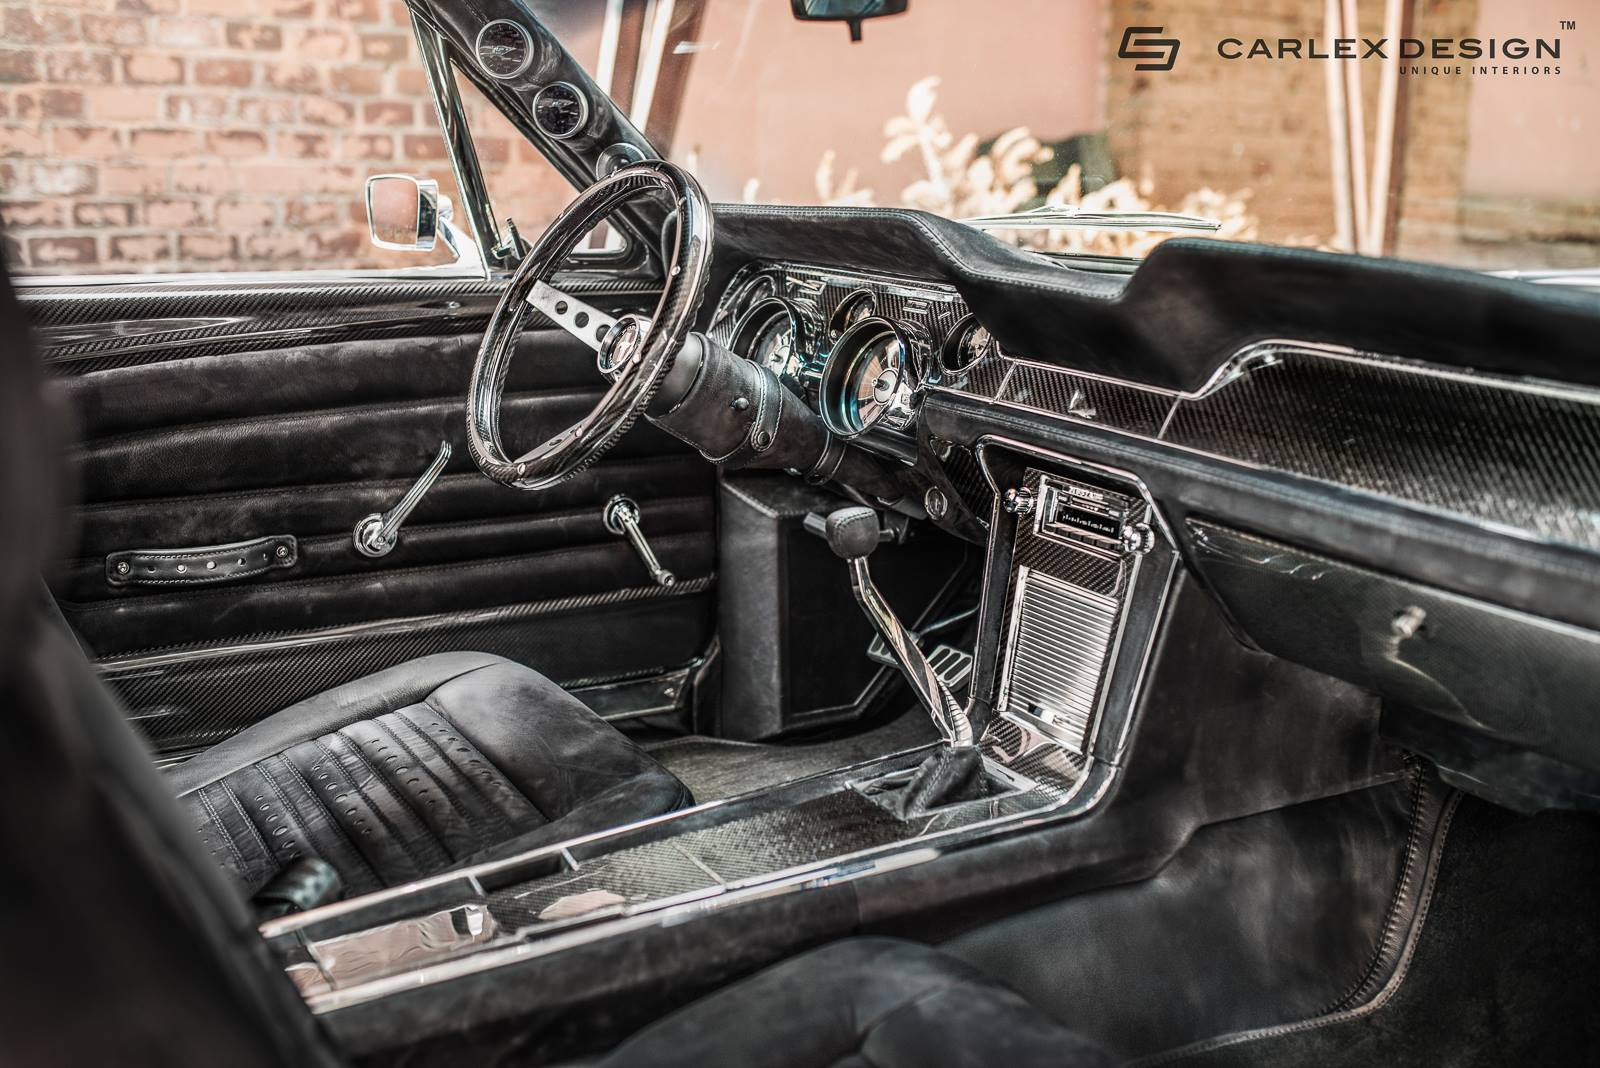 1967 ford mustang by carlex has carbon fiber and alcantara interior autoevolution for Carbon fiber mustang interior parts